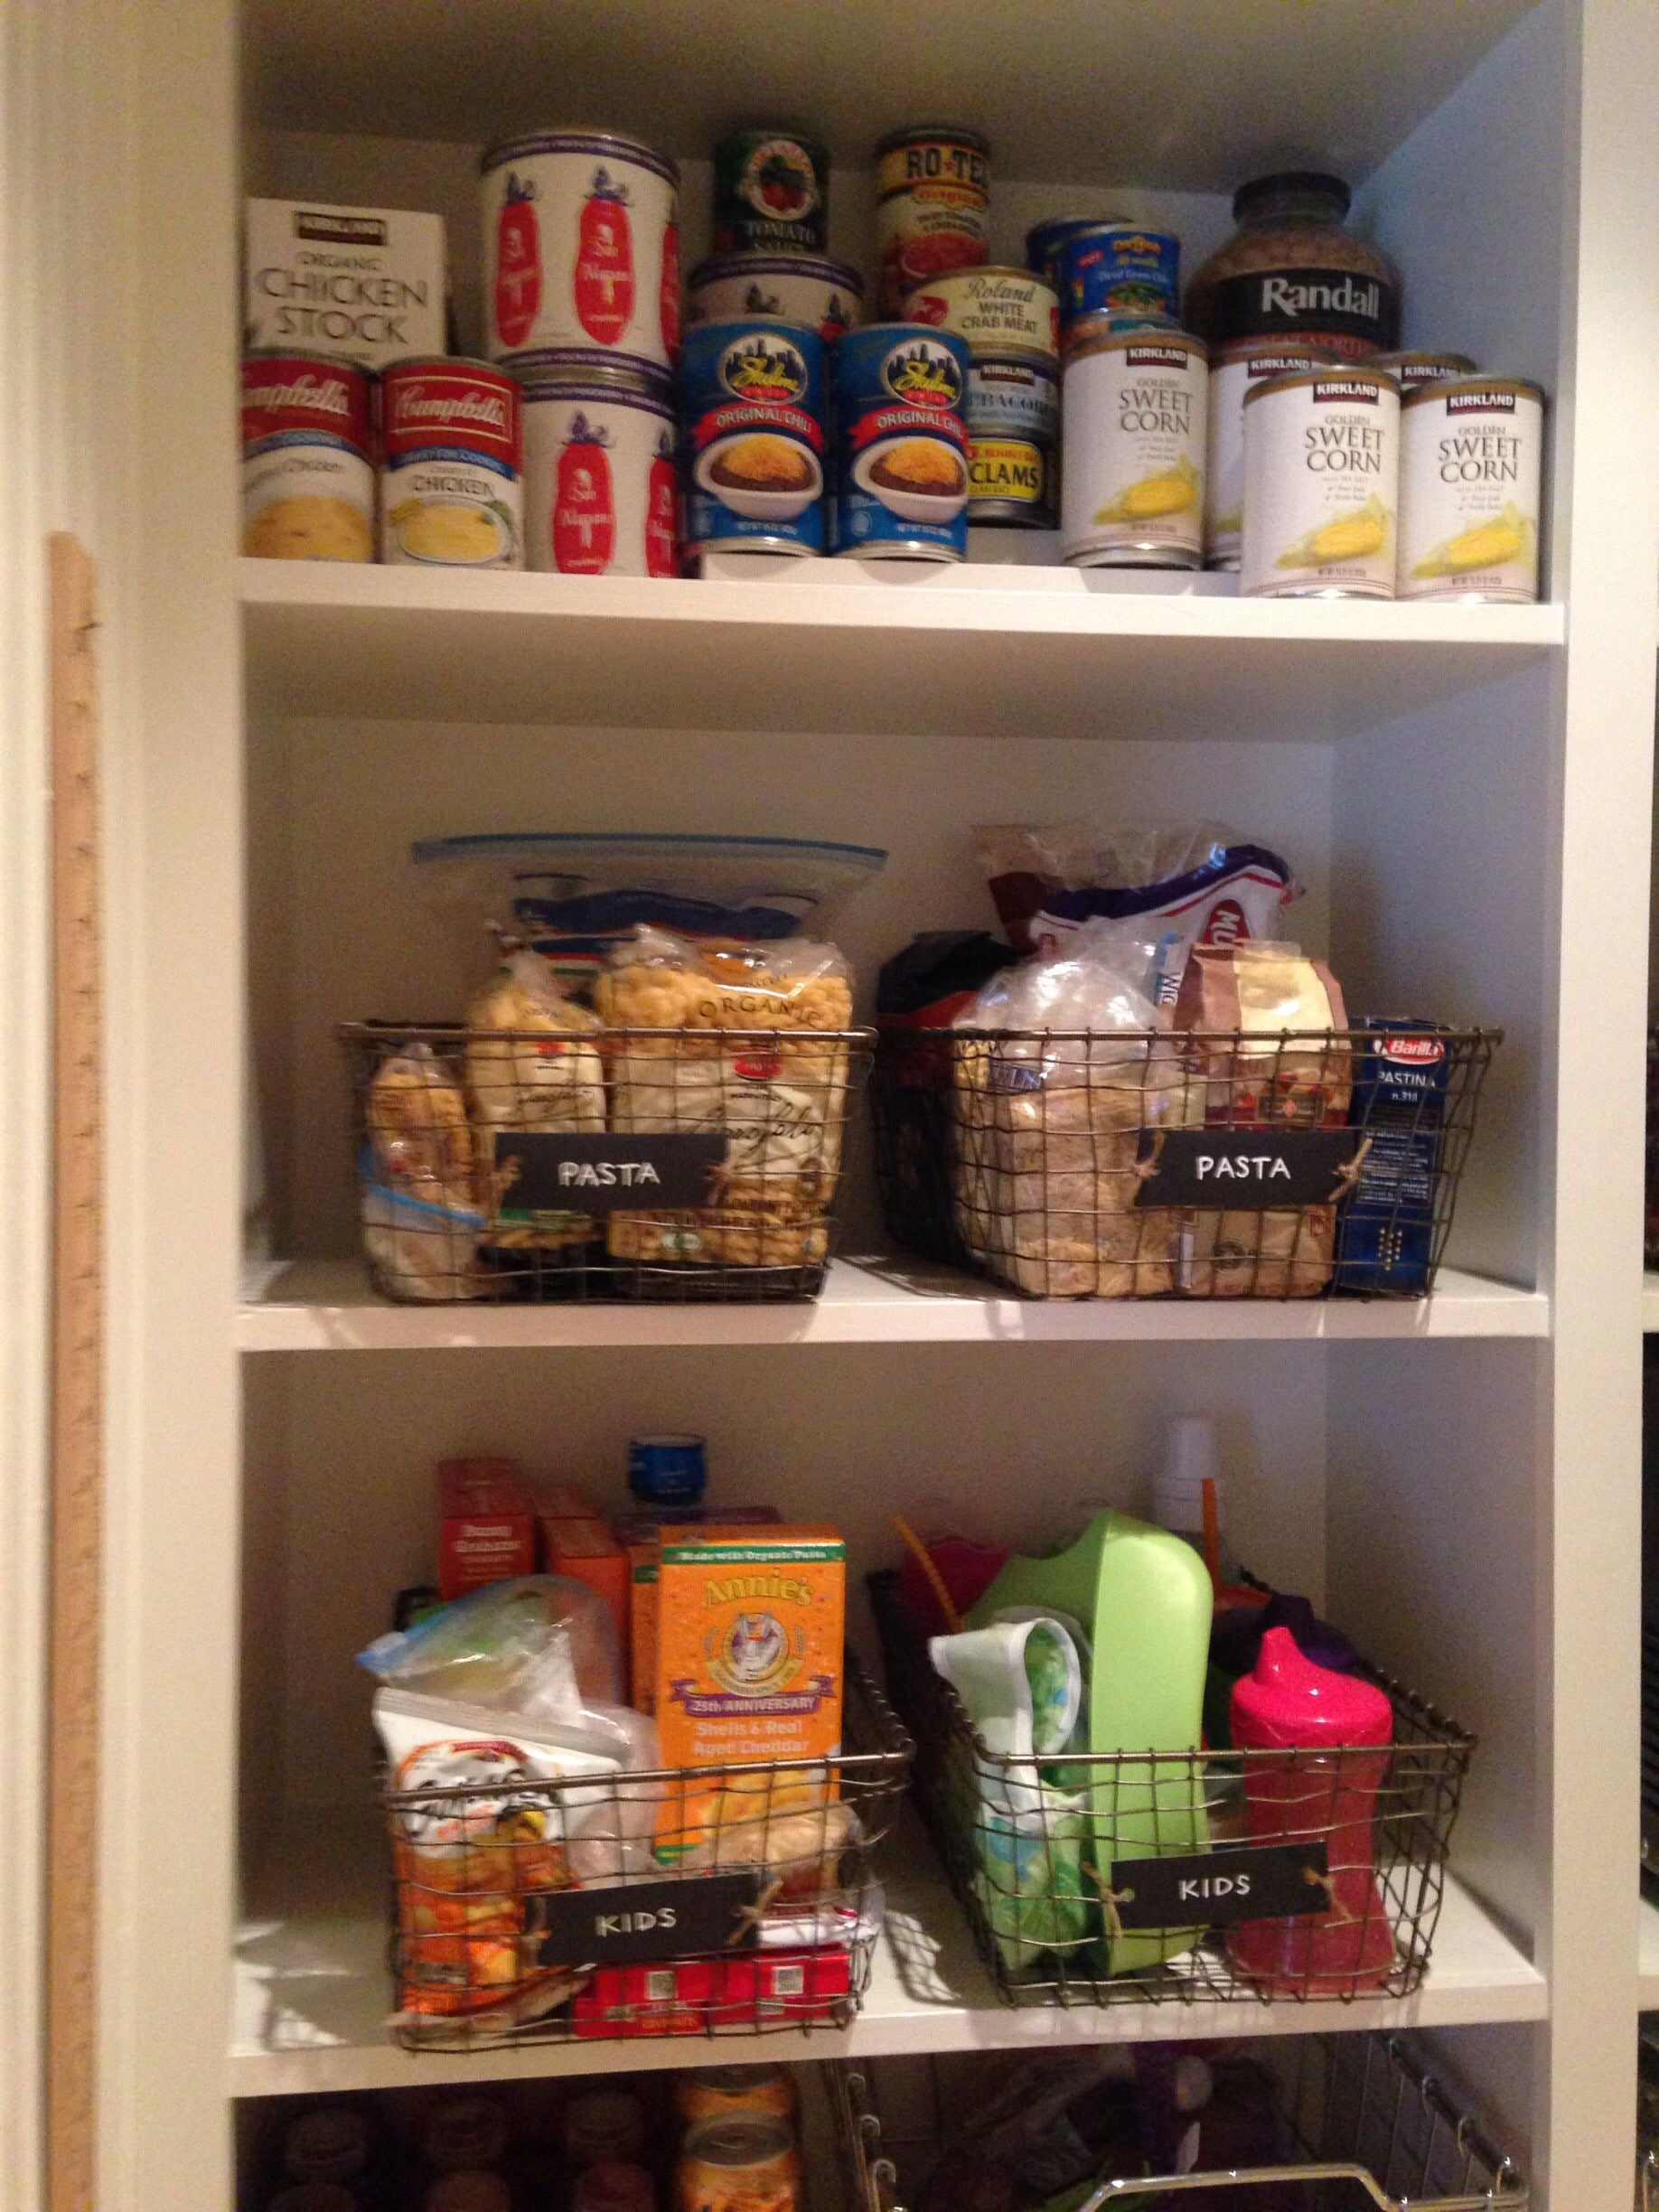 Lauren combs, Michigan, Detroit, home organizer, professional organizer, home organization, NEAT Method, NEAT, kitchen organization, organized pantry, kids lunches, clear canisters, organized food, pantry DIY, kitchen DIY, home design, home style, home decor